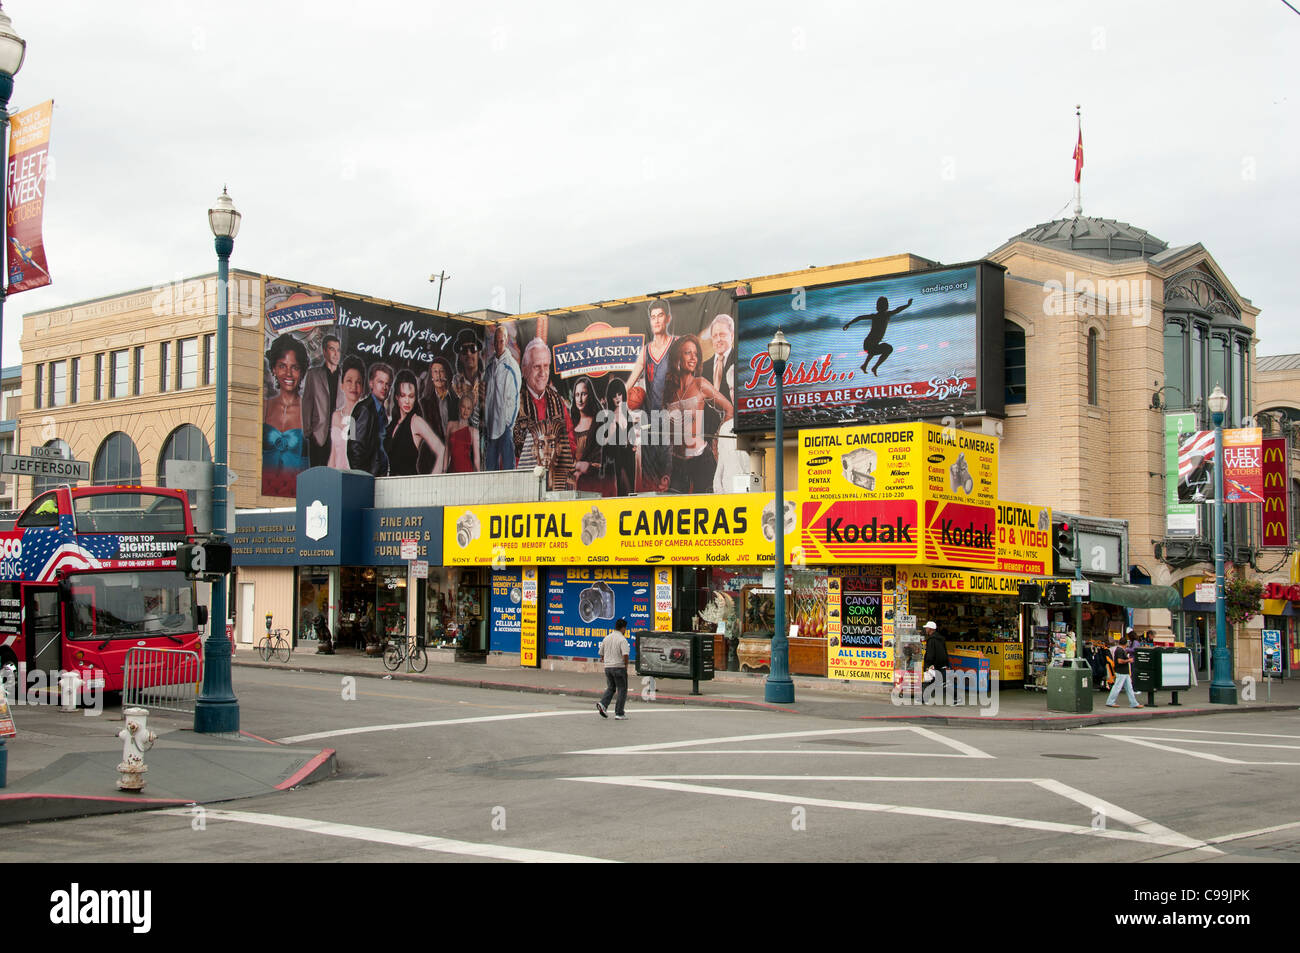 Kodak Digita lCamera Cameras Billboard Sign Fishermans Fisherman's Wharf San Francisco California United States - Stock Image